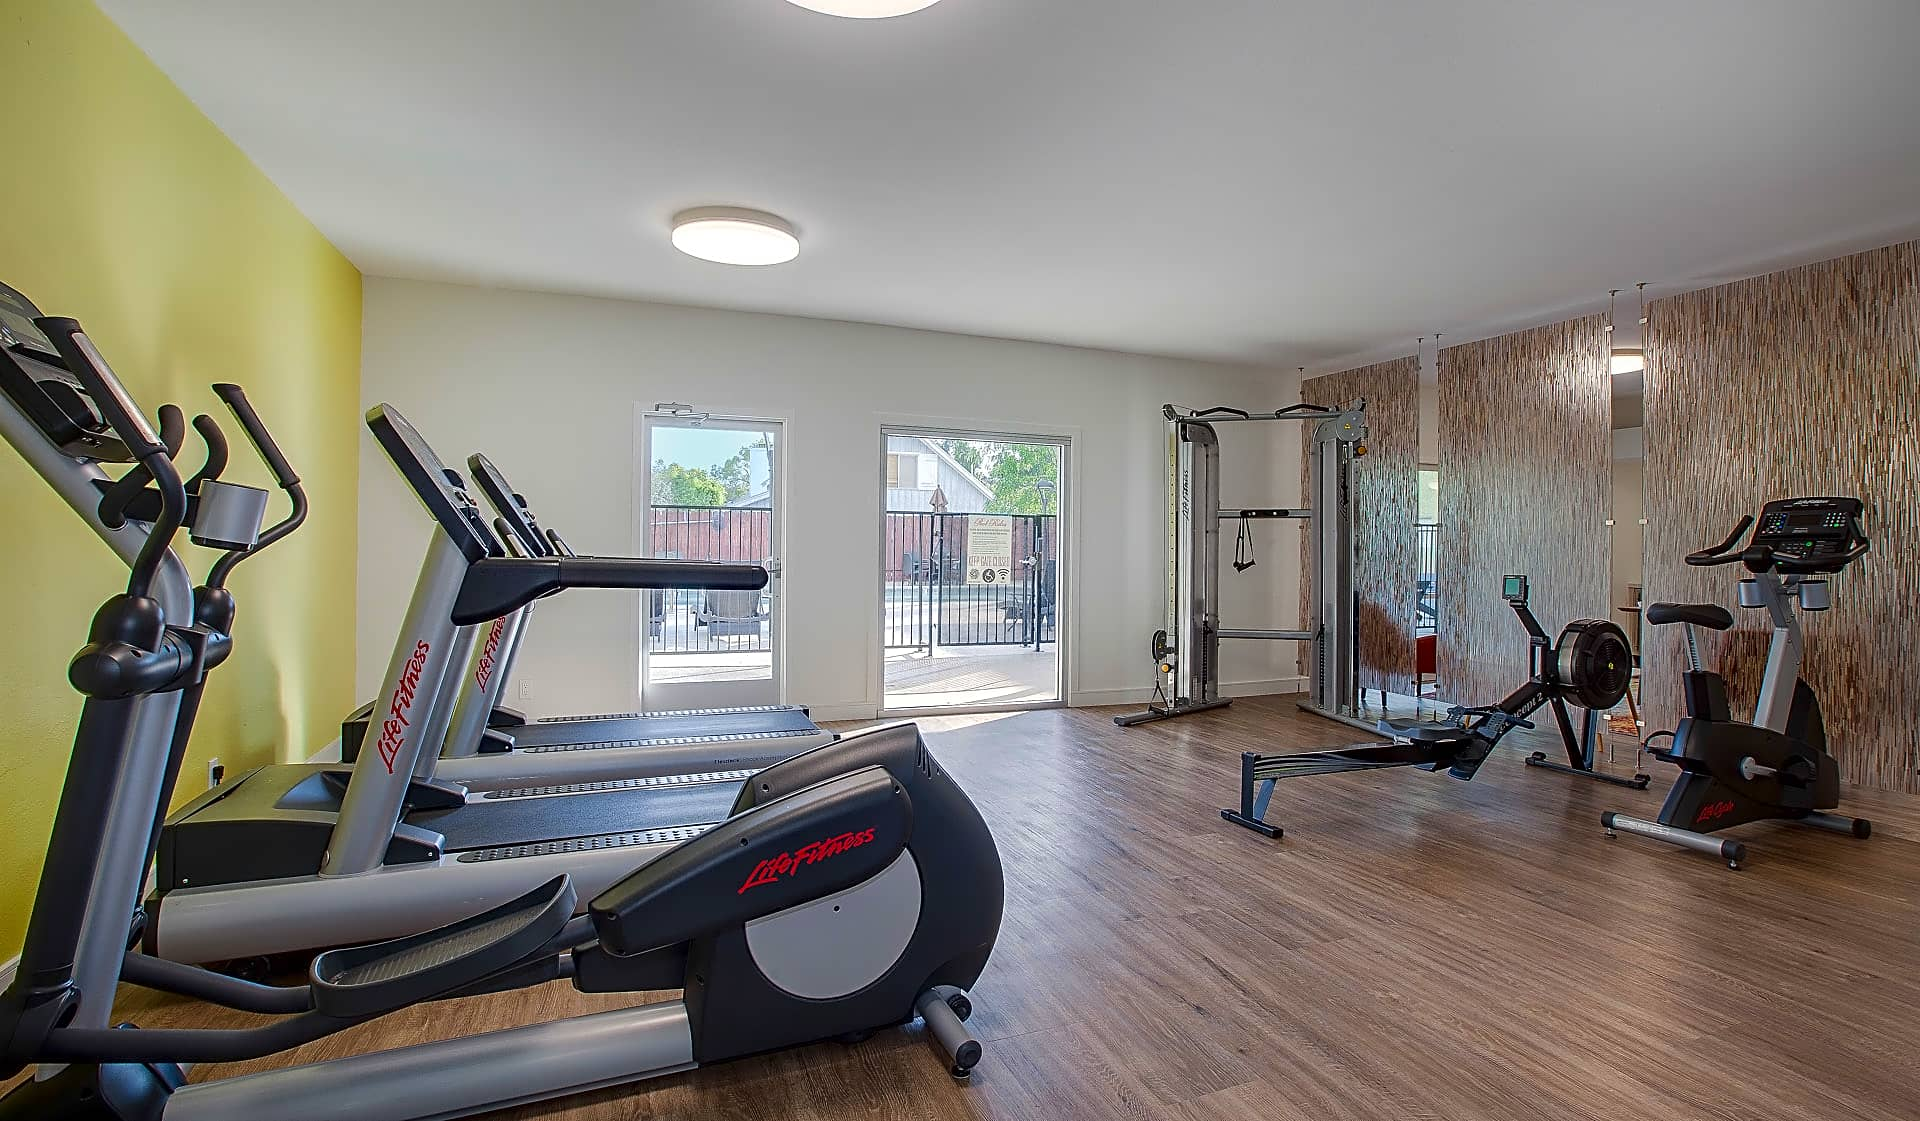 Work out in our community fitness center